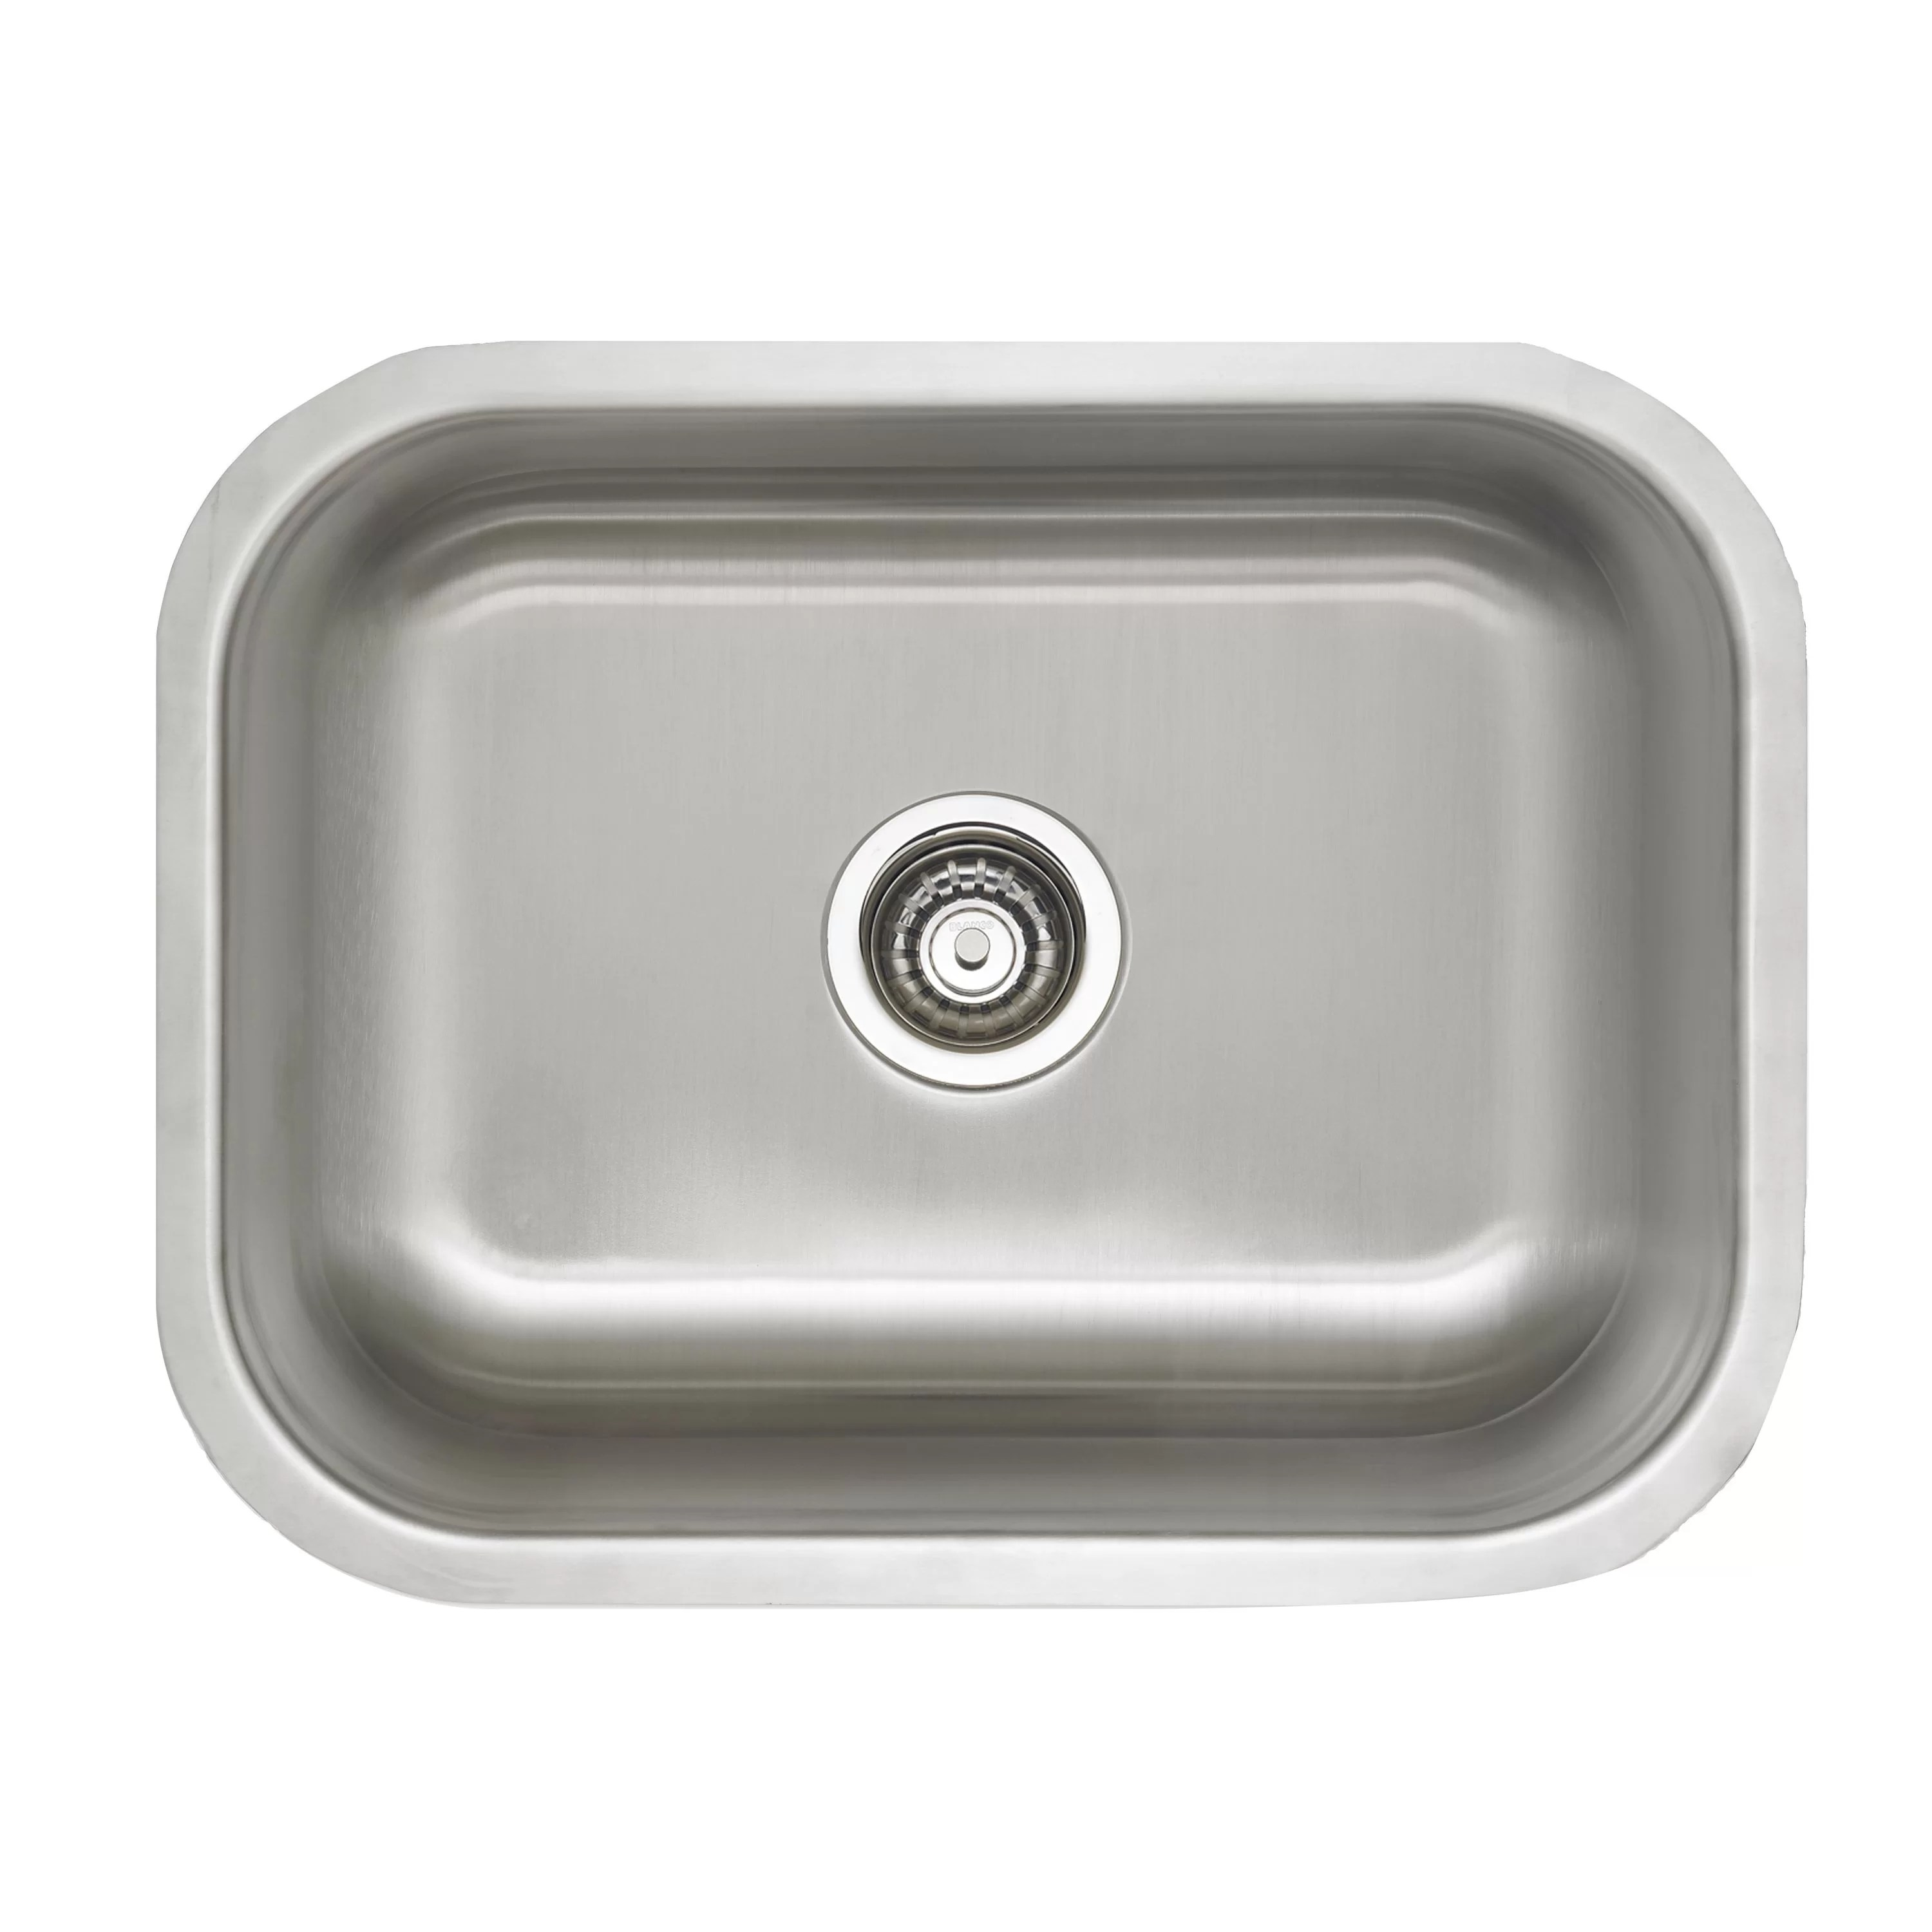 Blanco Farmhouse Sink Reviews Blanco Stellar 23 Quot X 17 75 Quot Laundry Undermount Kitchen